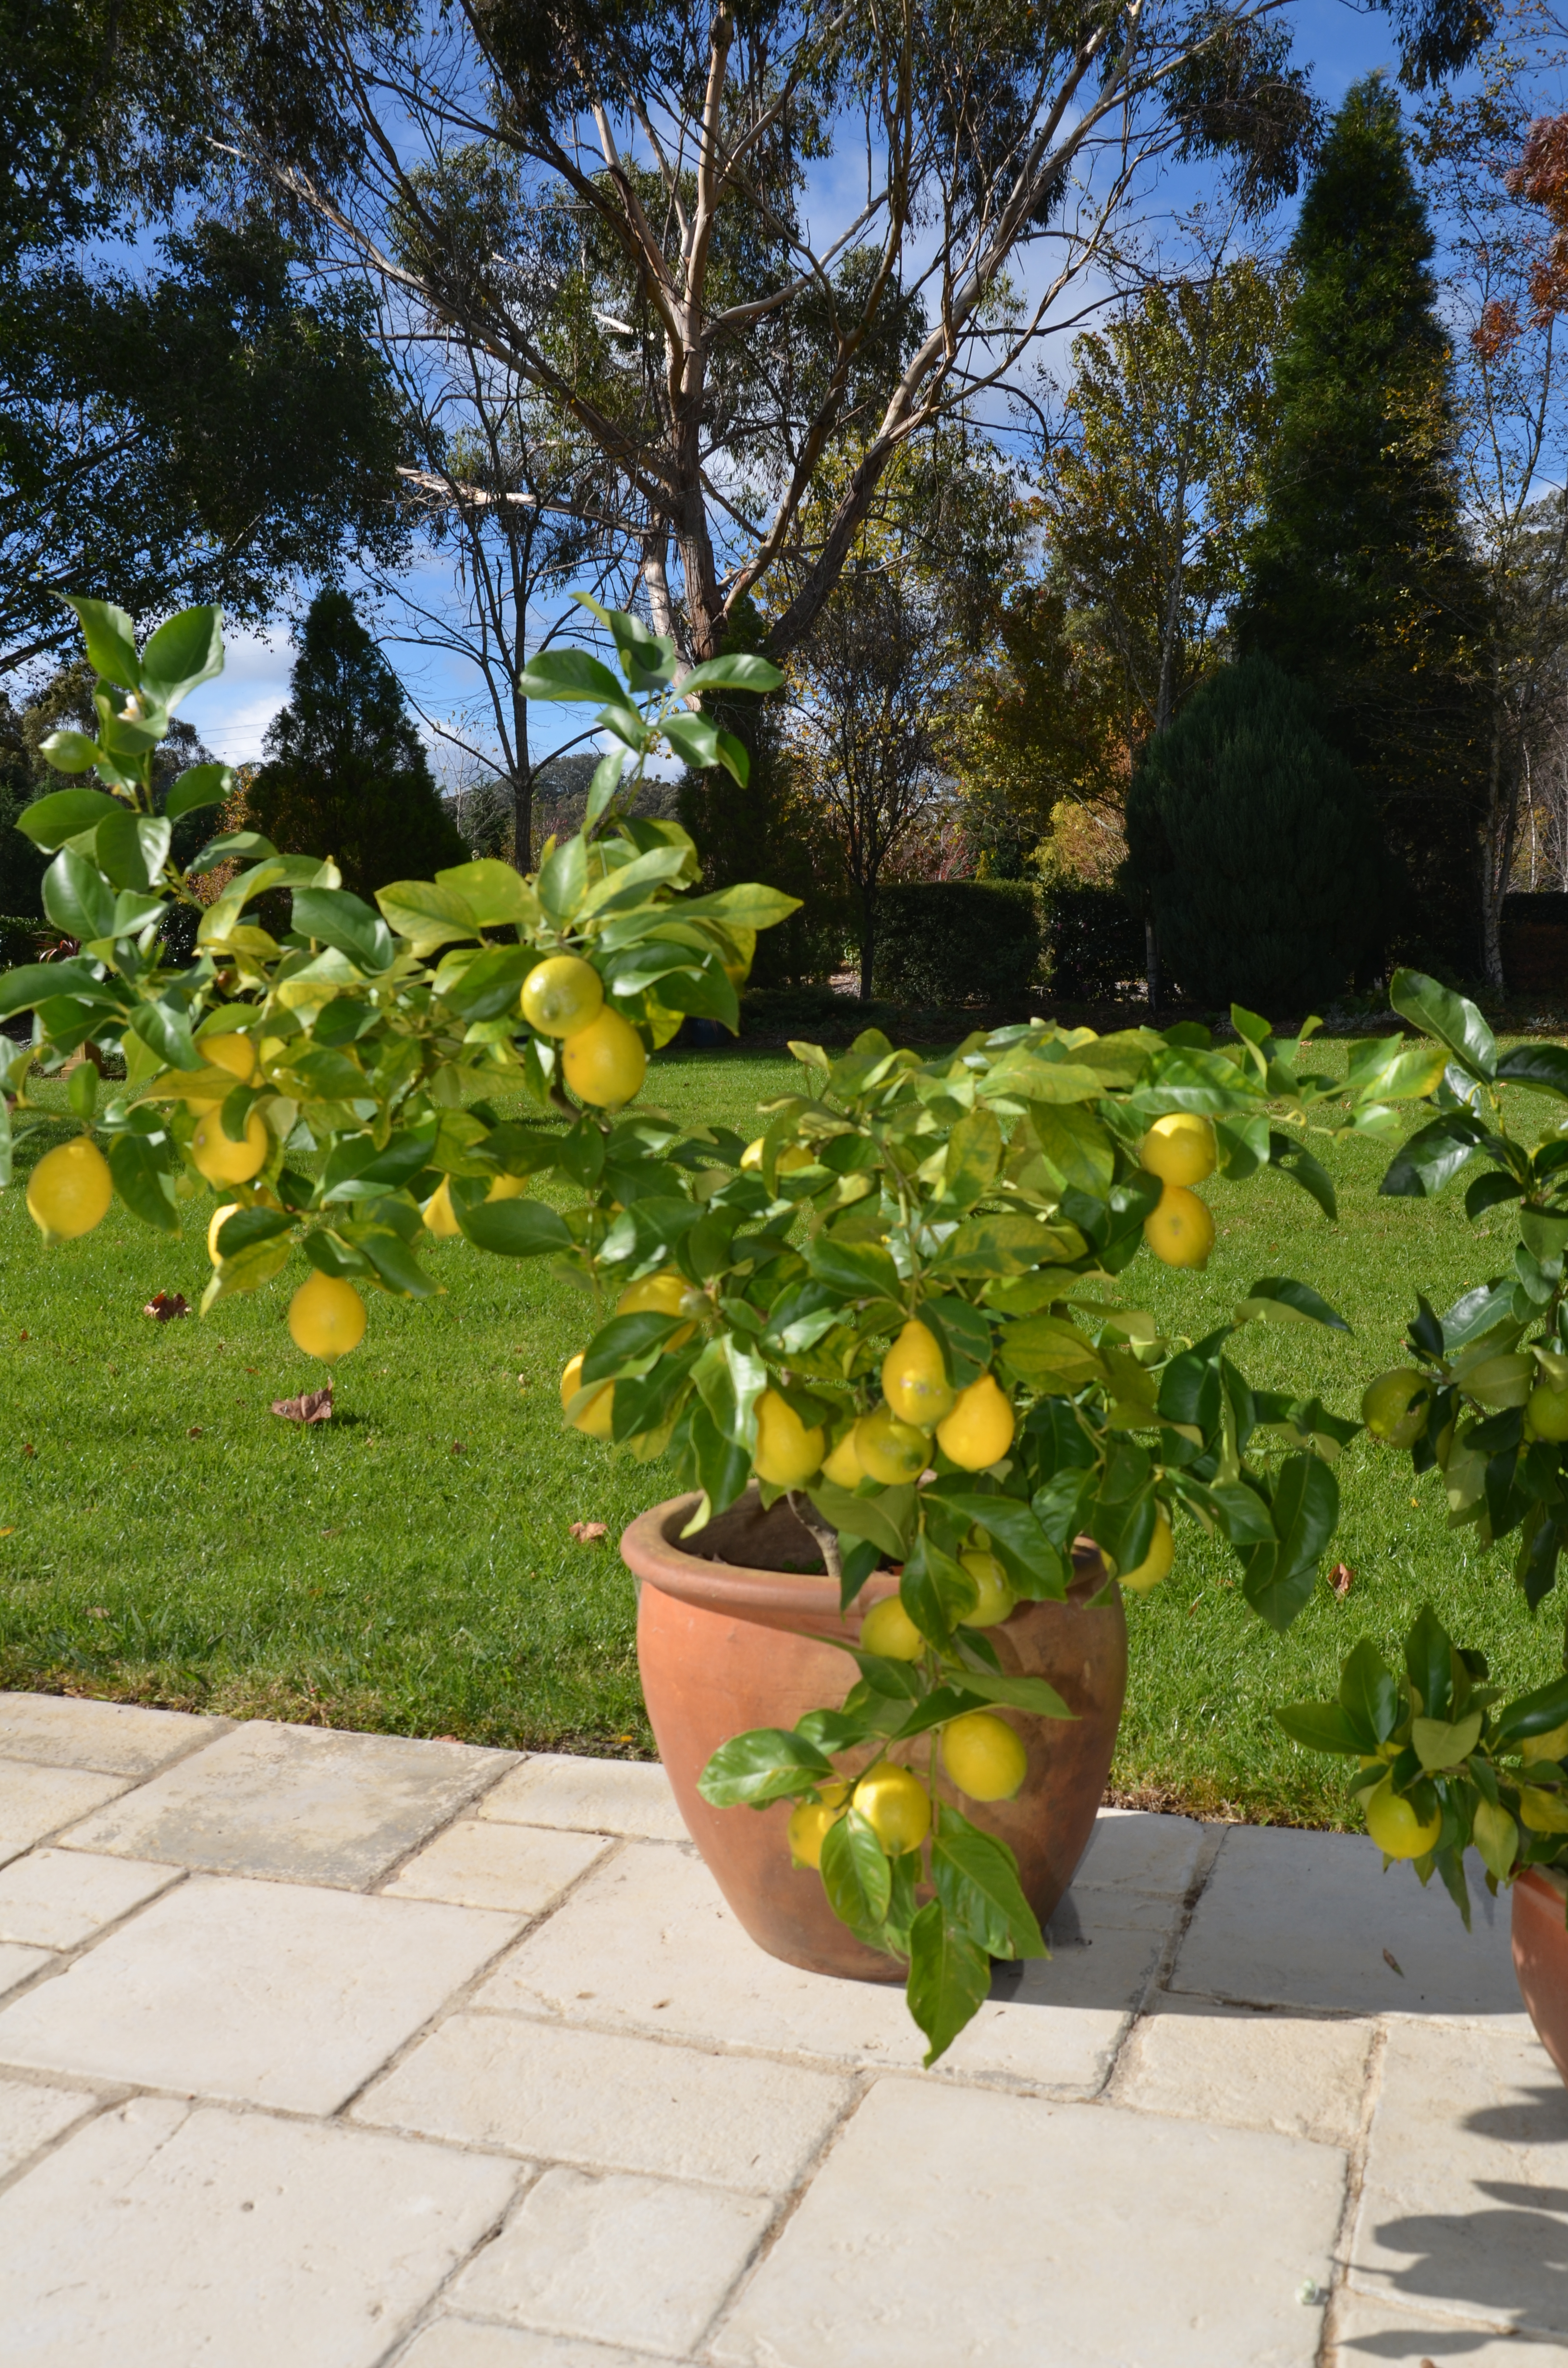 How to grow citrus in pots myproductivebackyard for Growing a lemon tree in a pot from seed